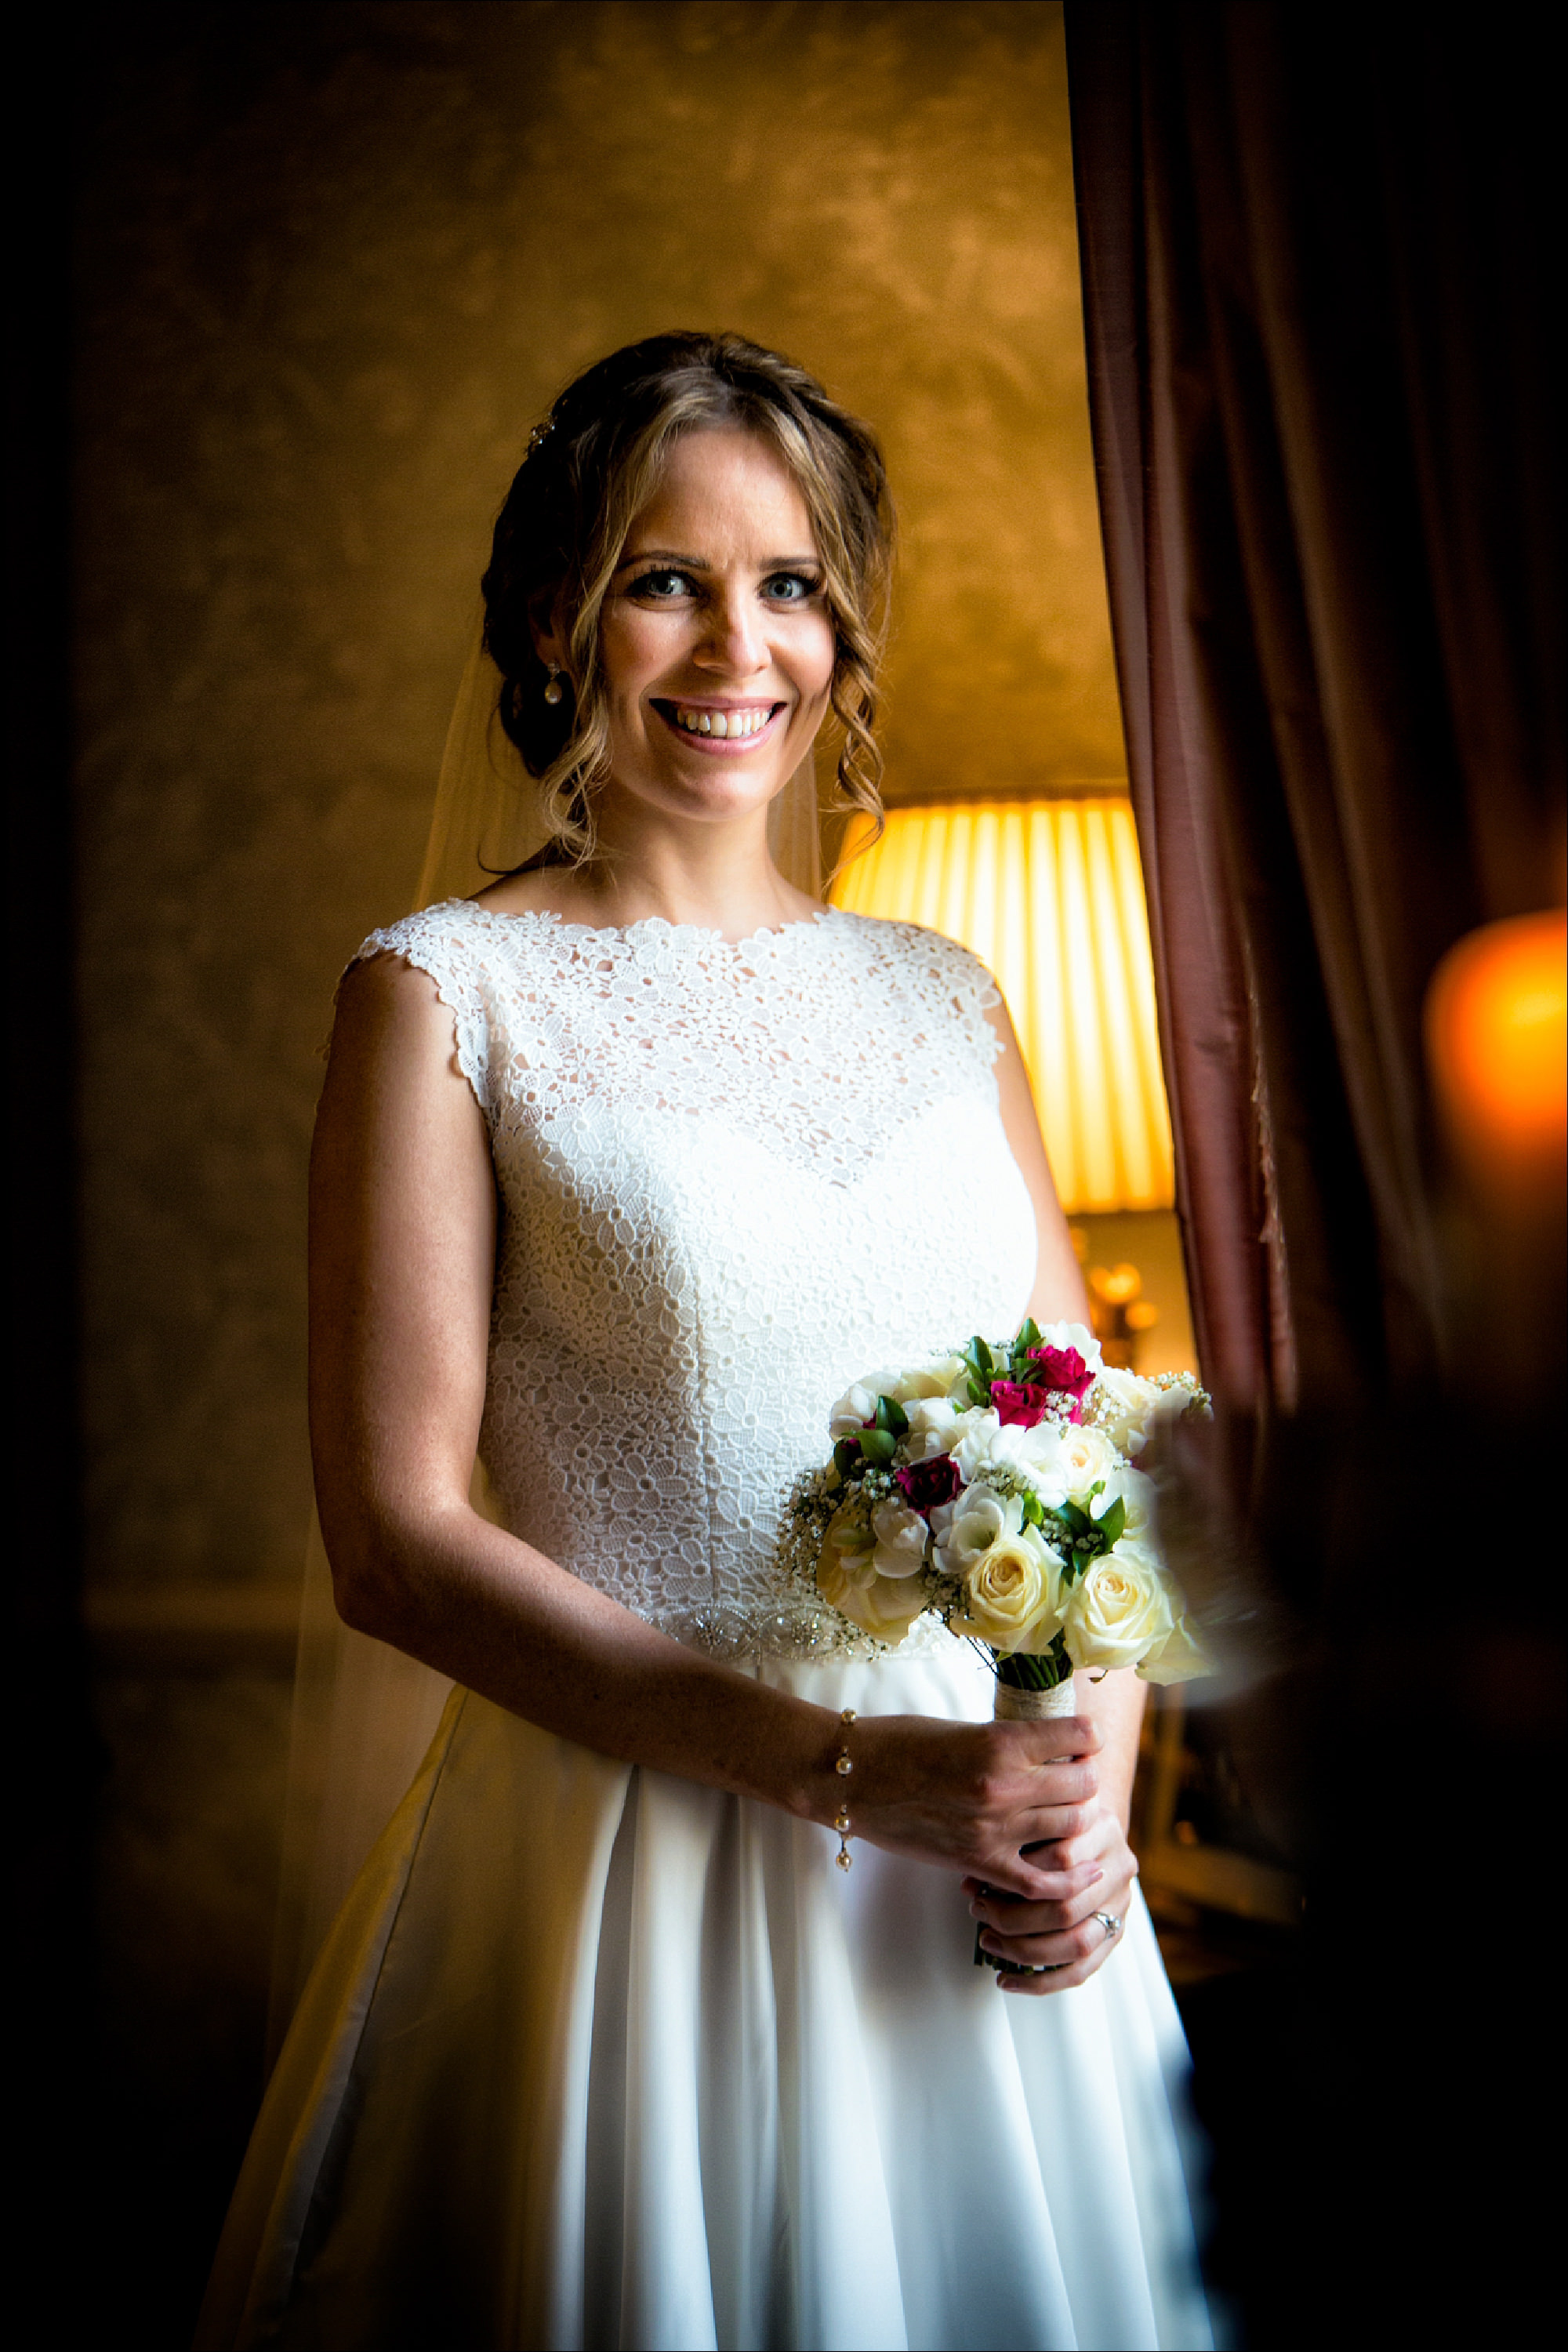 dublin wedding photographer david duignan photography tankardstown weddings slane rathfeigh church ireland 0031